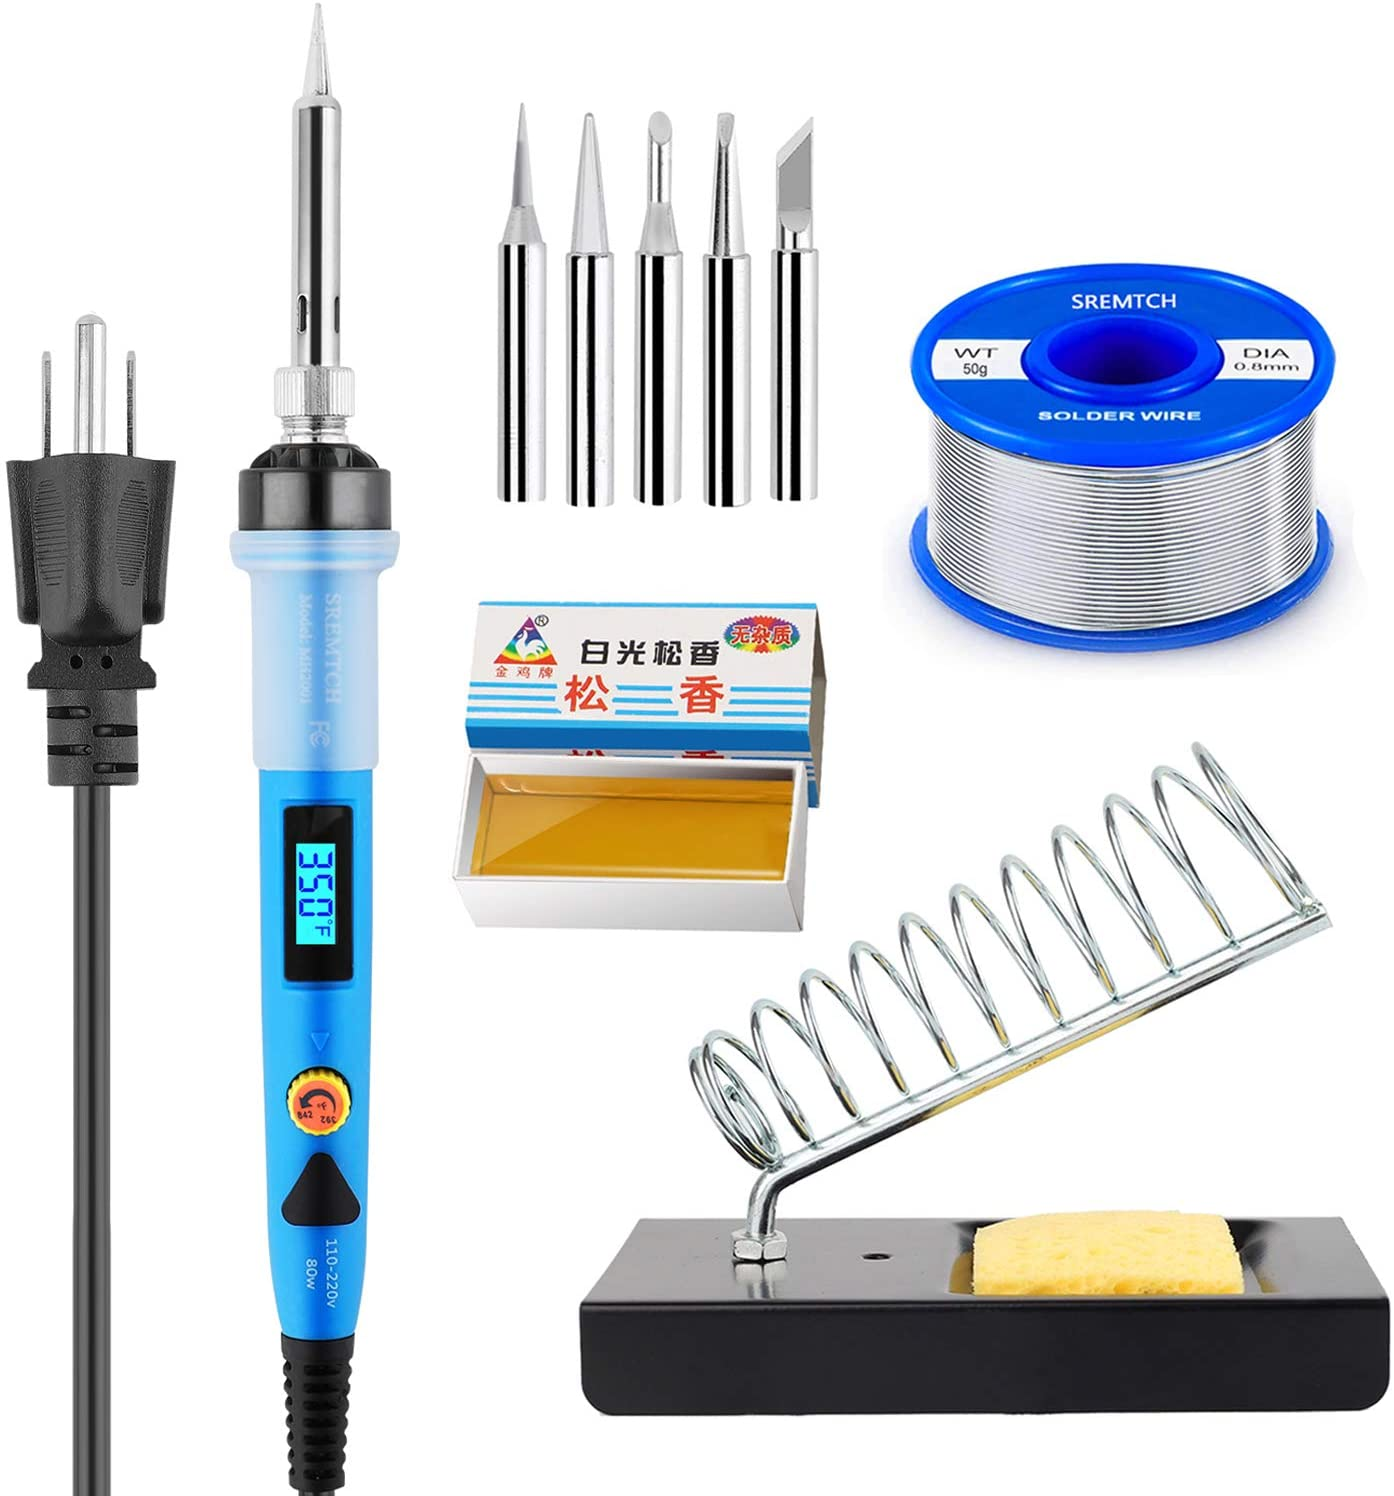 Soldering Iron Kit, 80W Digital LCD Solder Gun Adjustable Temperature Controlled Fast Heating Welding Tools for Electronics